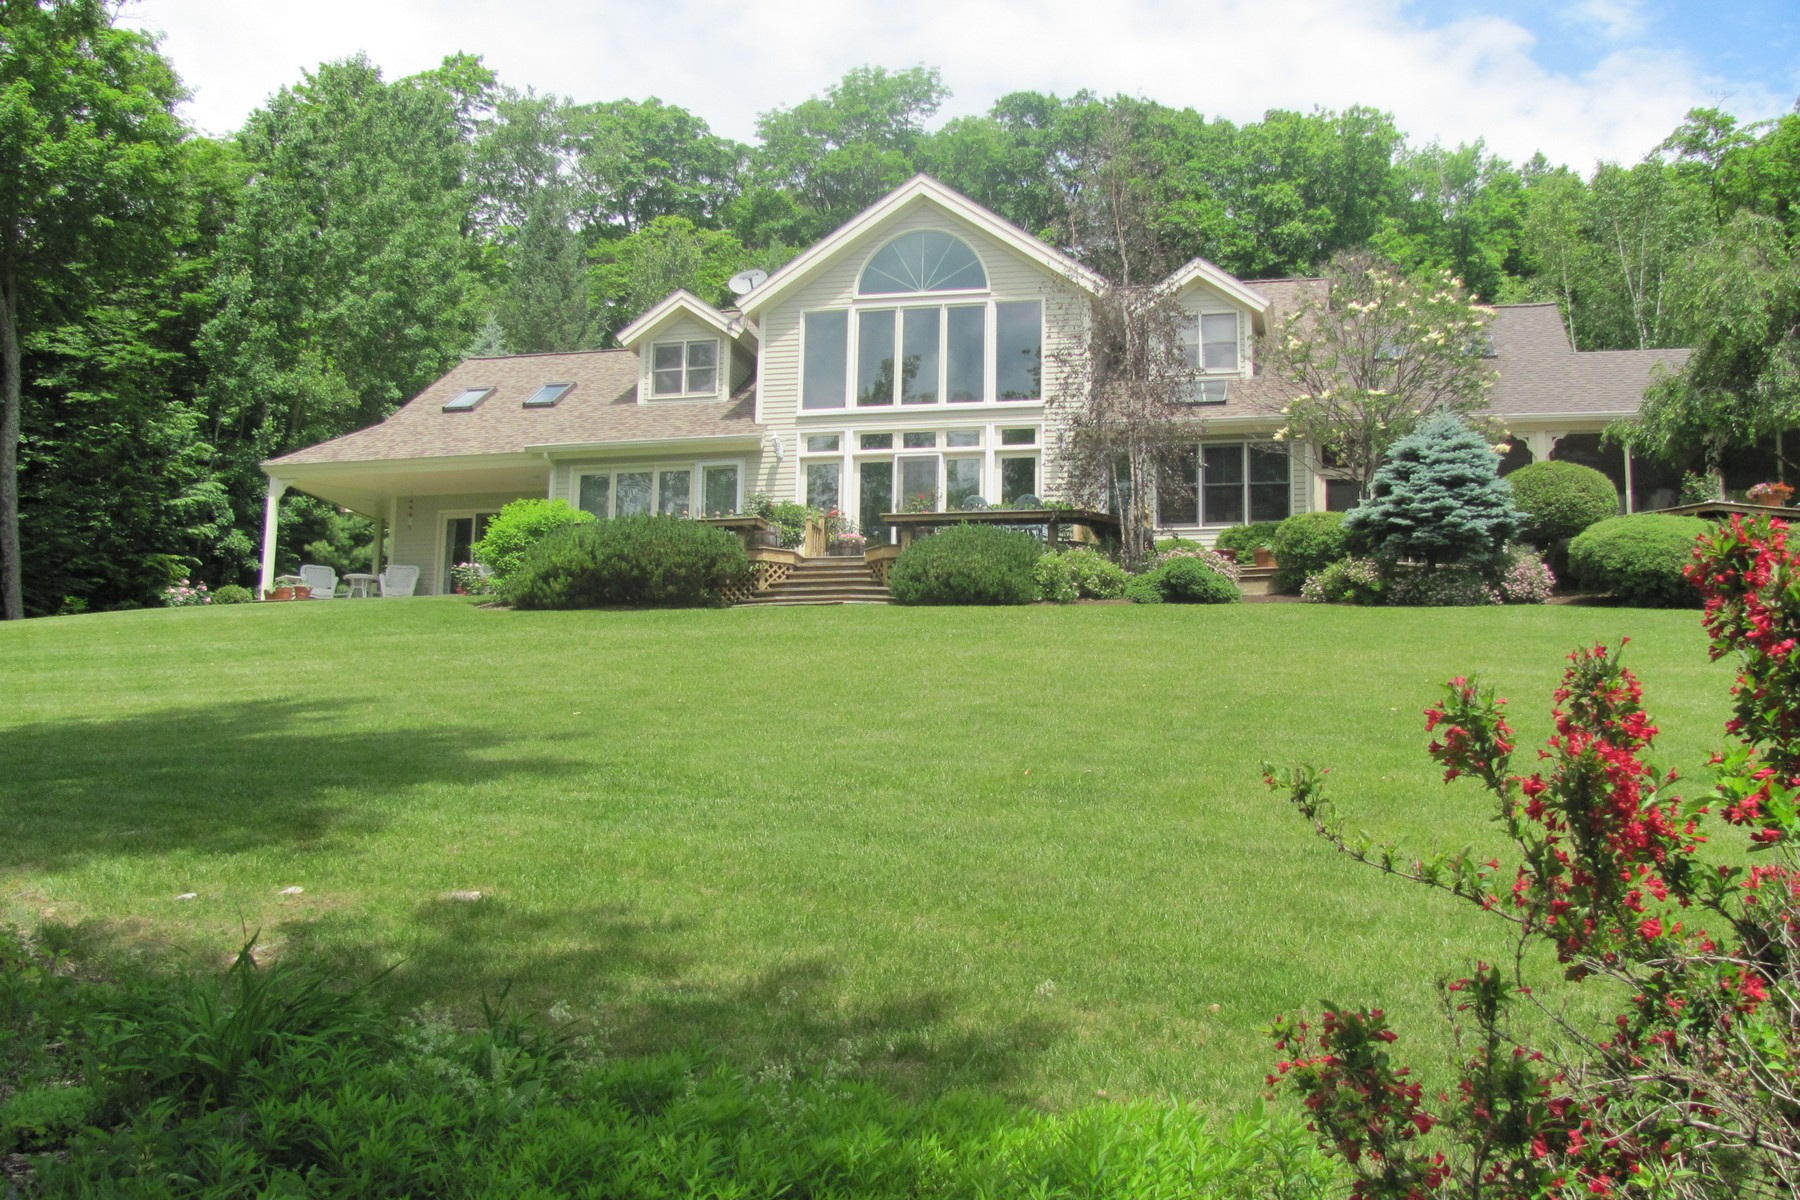 Single Family Home for Sale at 575 Owls Head Hill, Dorset Dorset, Vermont, 05251 United States